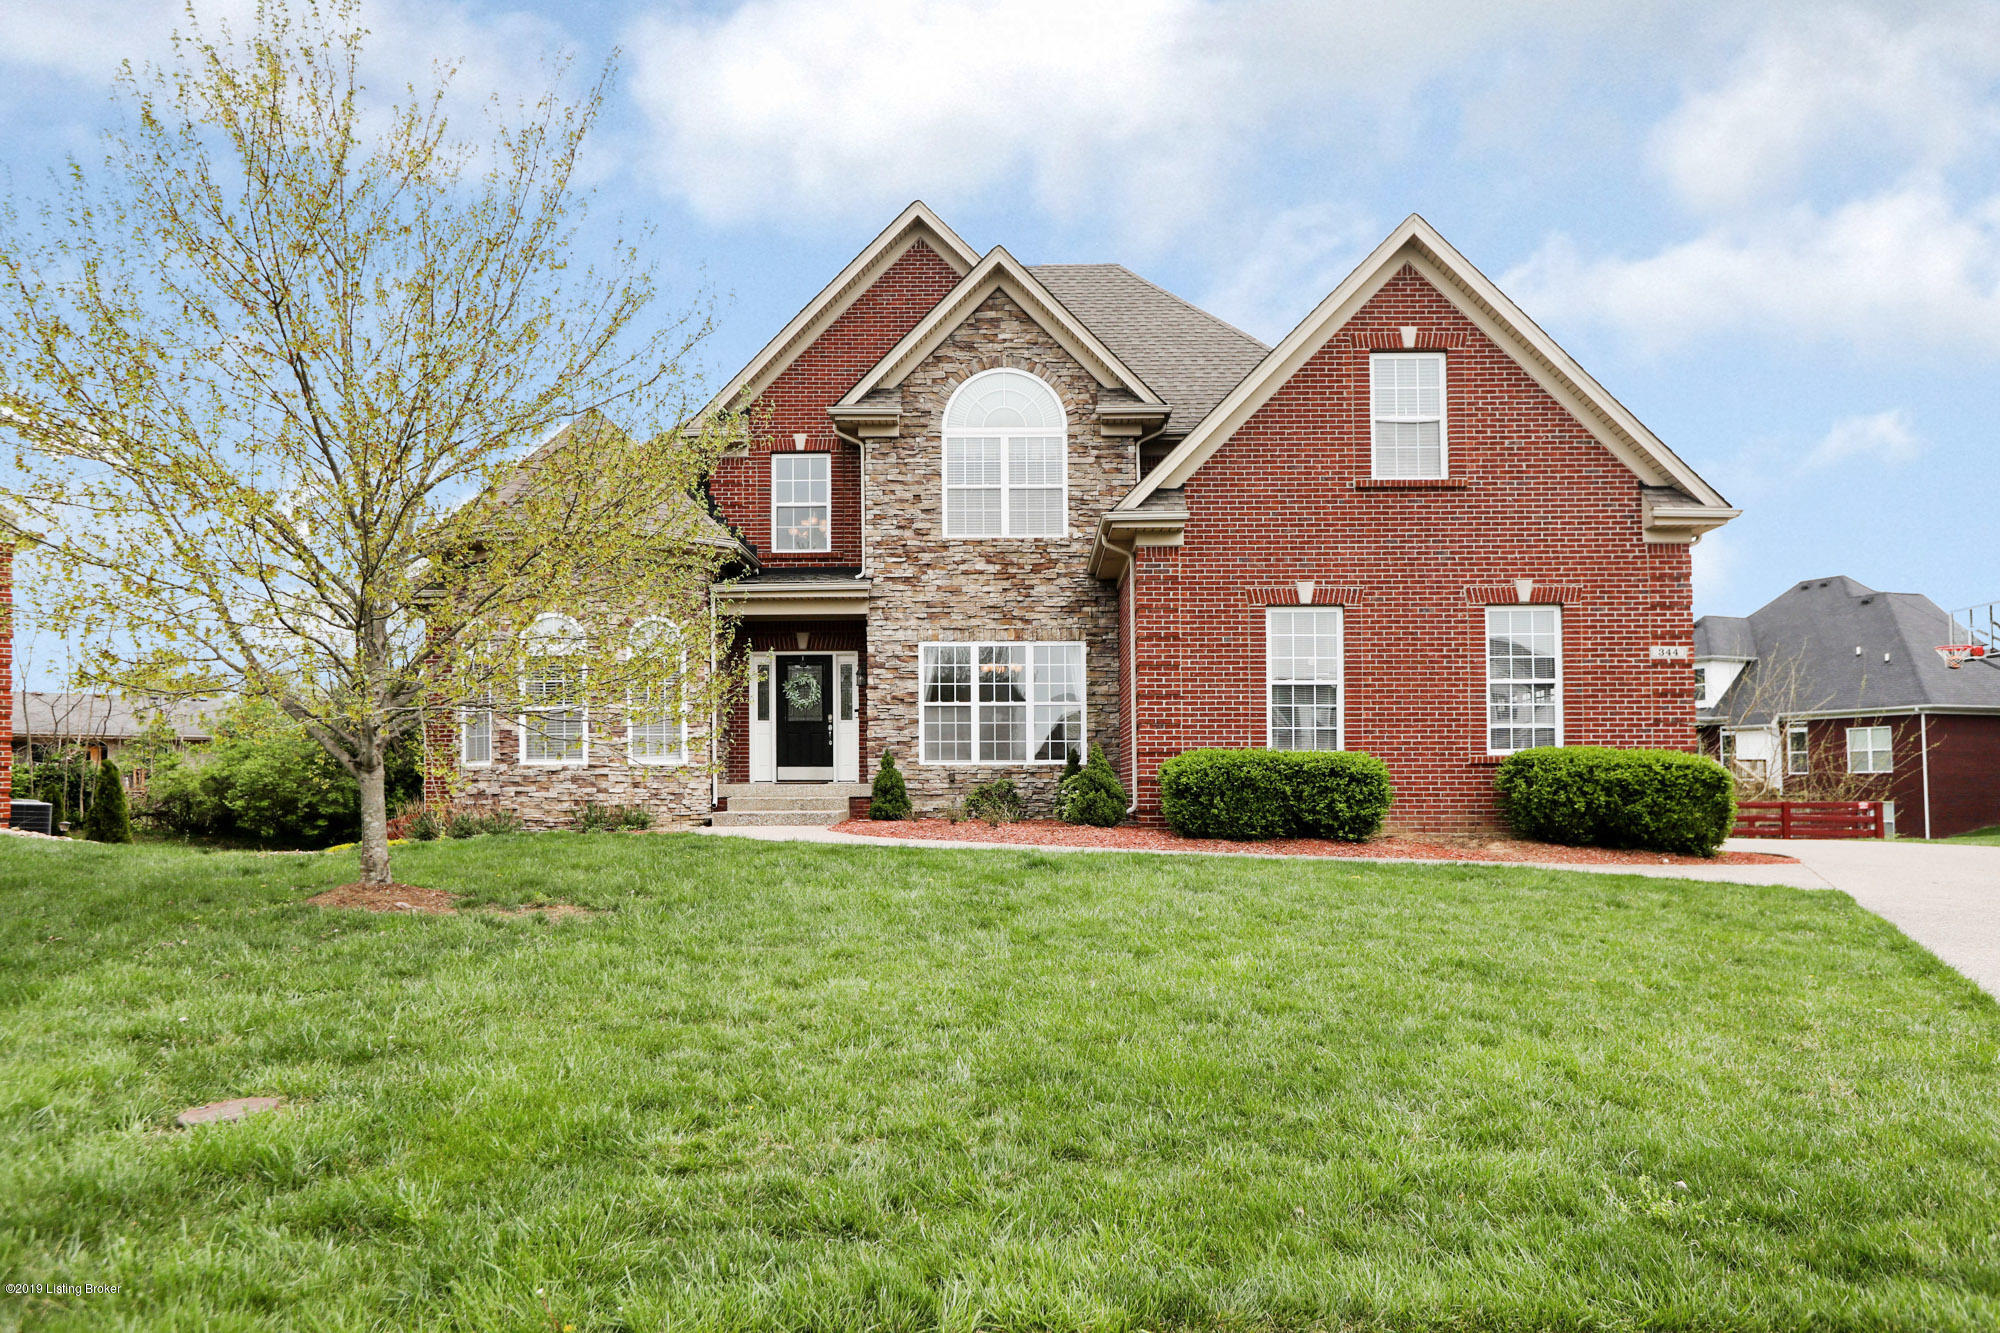 344 Par Ct, Simpsonville, Kentucky 40067